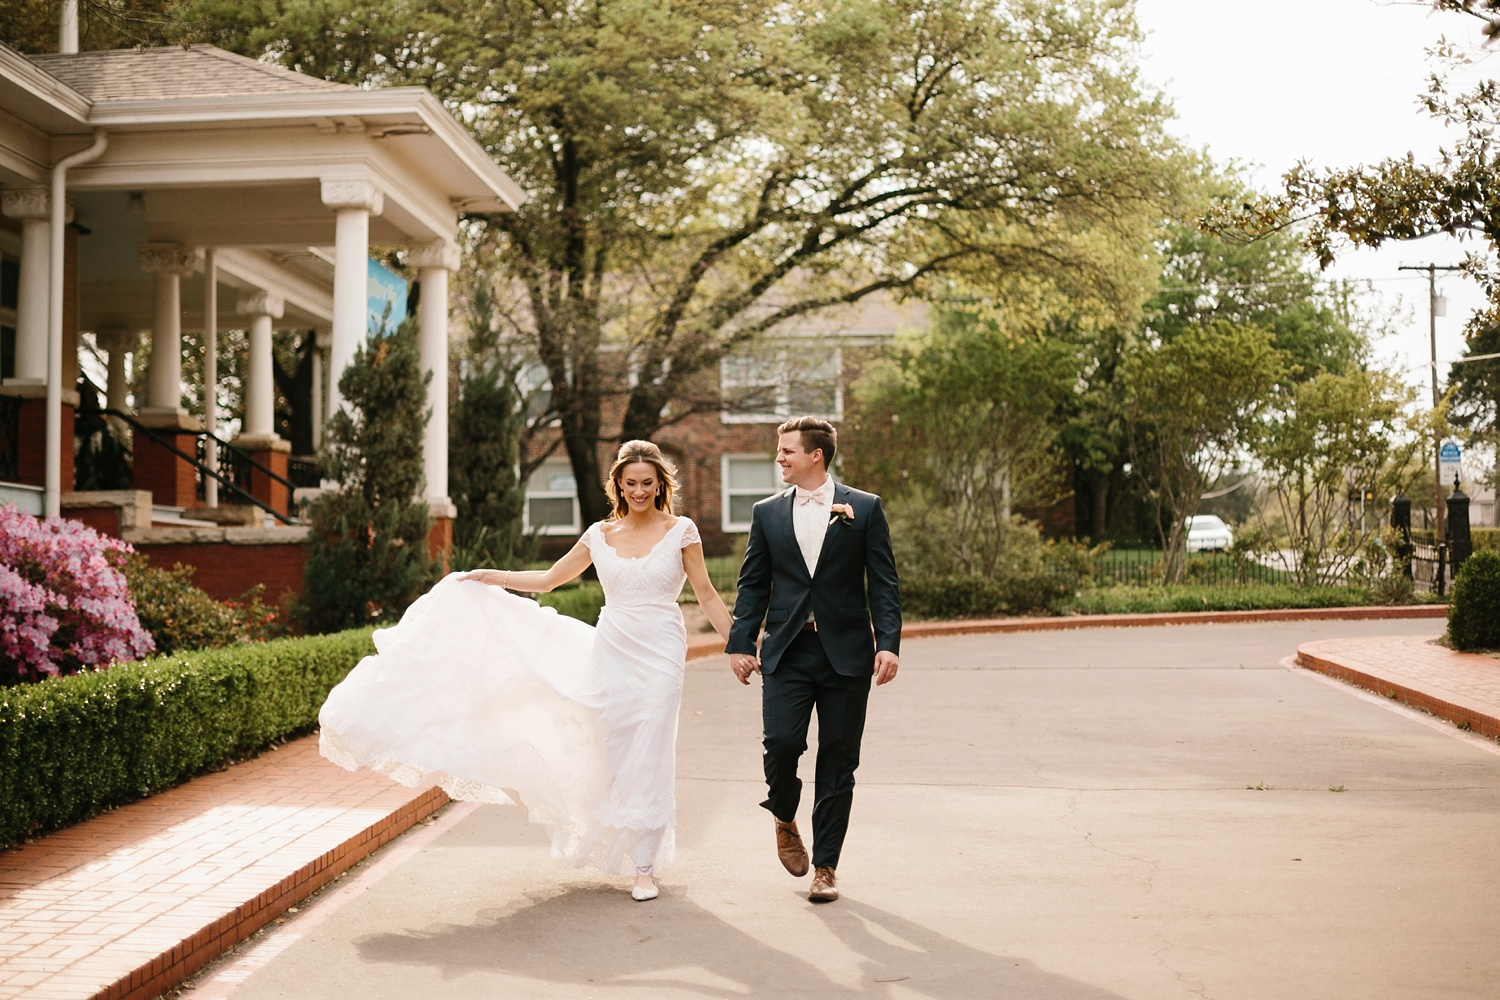 Amber + Daniel an intimate, simple, spring ceremony at Heard Craig Center and reception at Gather in McKinney, Texas by North Texas Wedding Photographer Rachel Meagan Photography 092